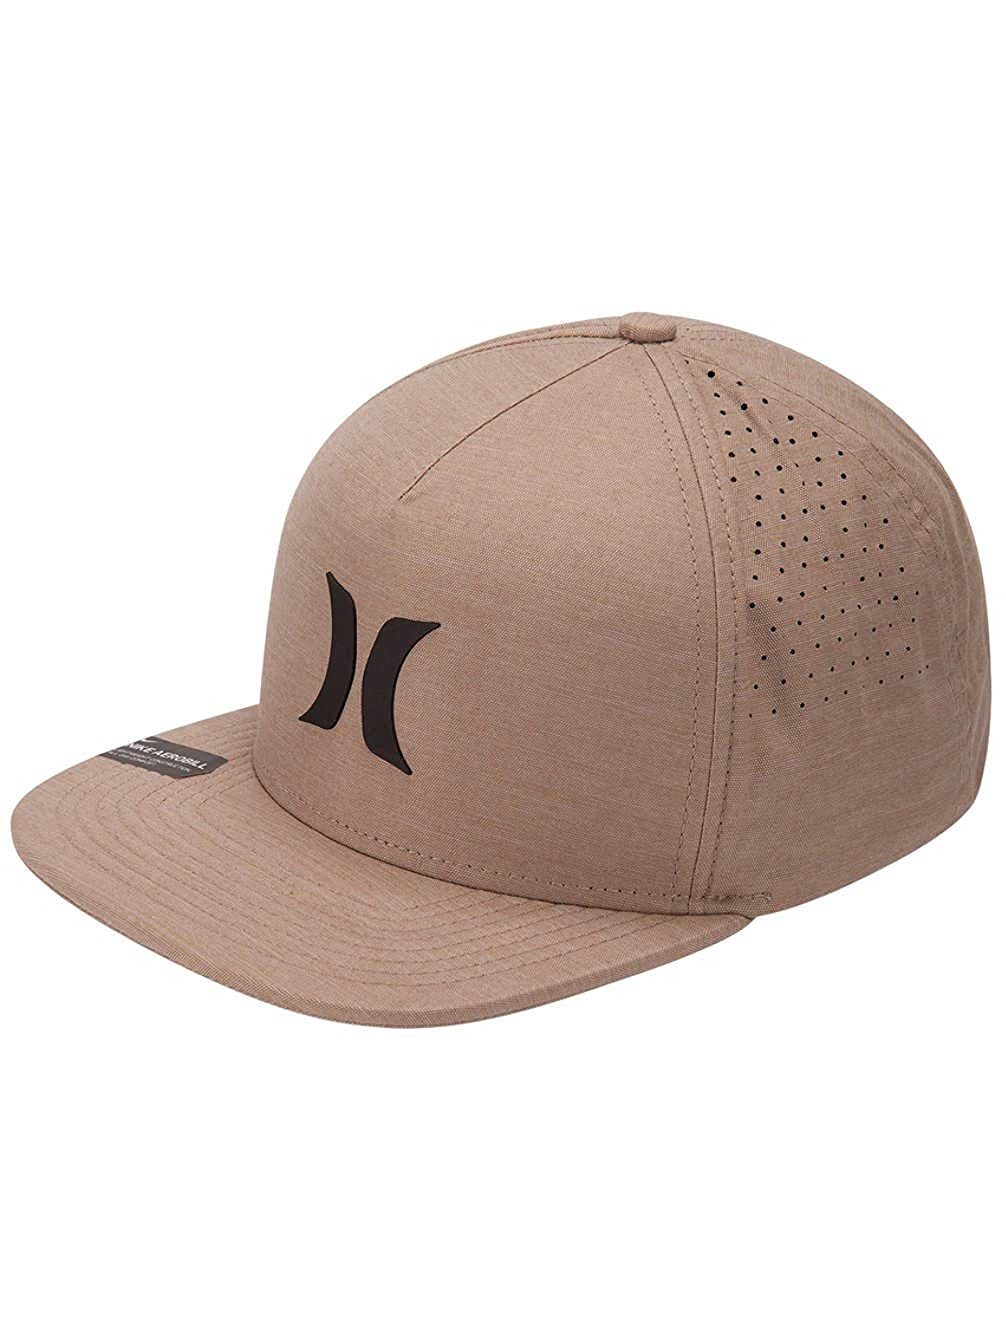 71861884 Amazon.com: Hurley Men's Dri-Fit Icon 4.0 Hat: Clothing